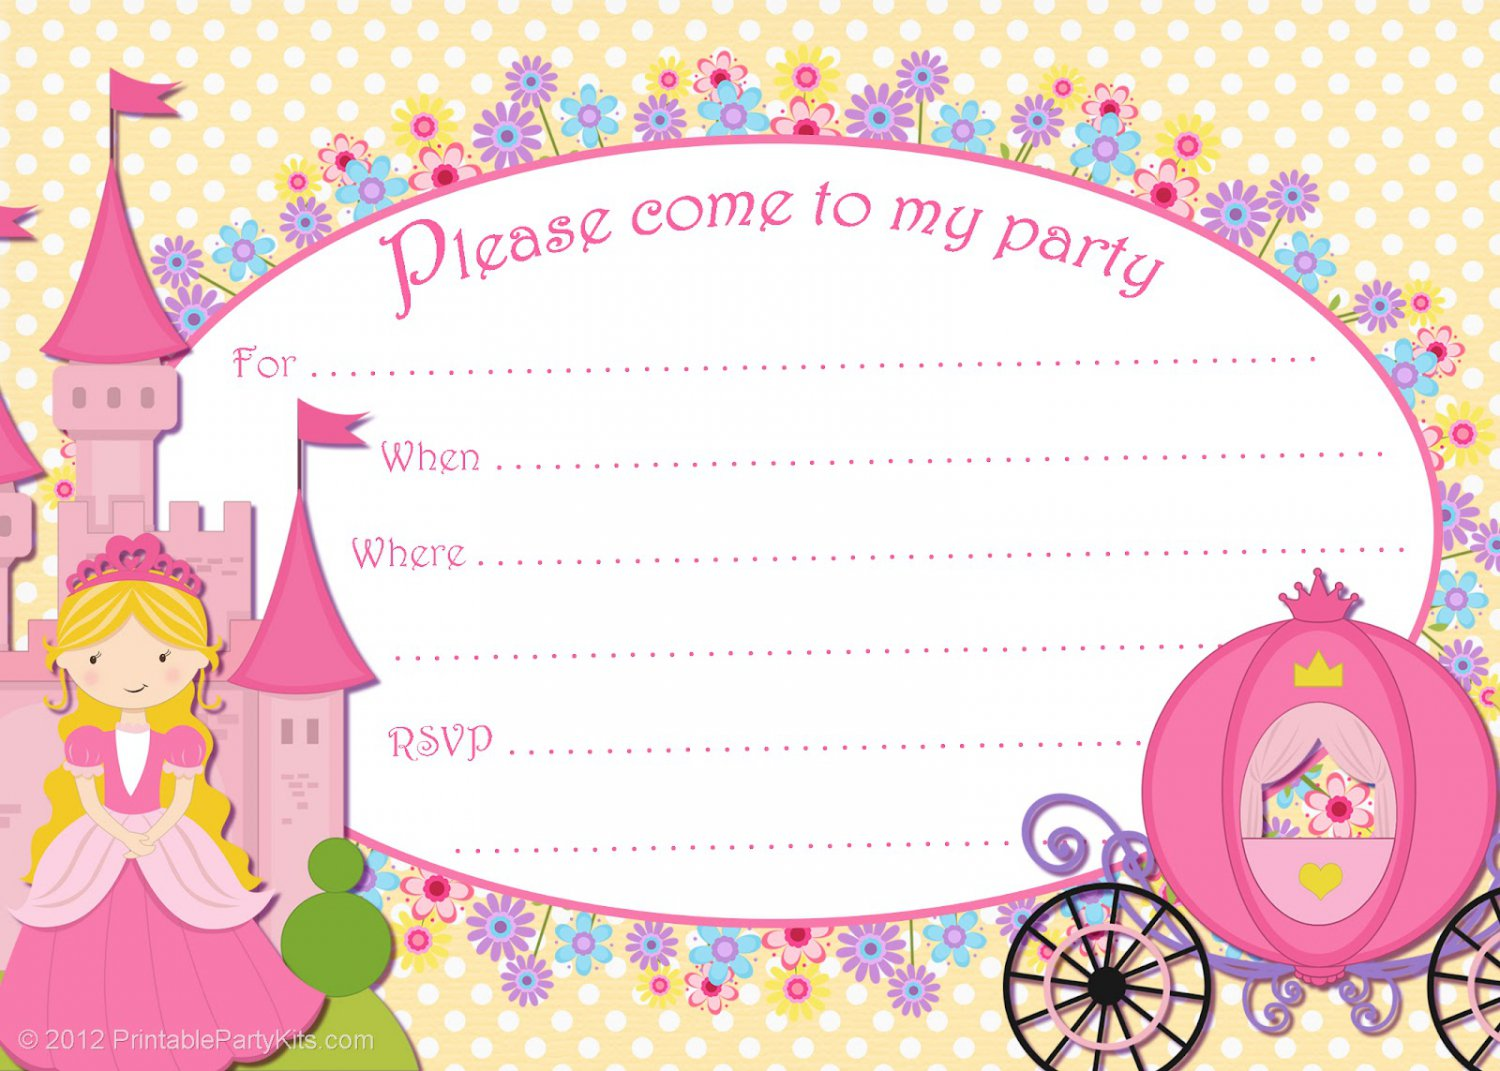 Printable Party Invitations Free Download